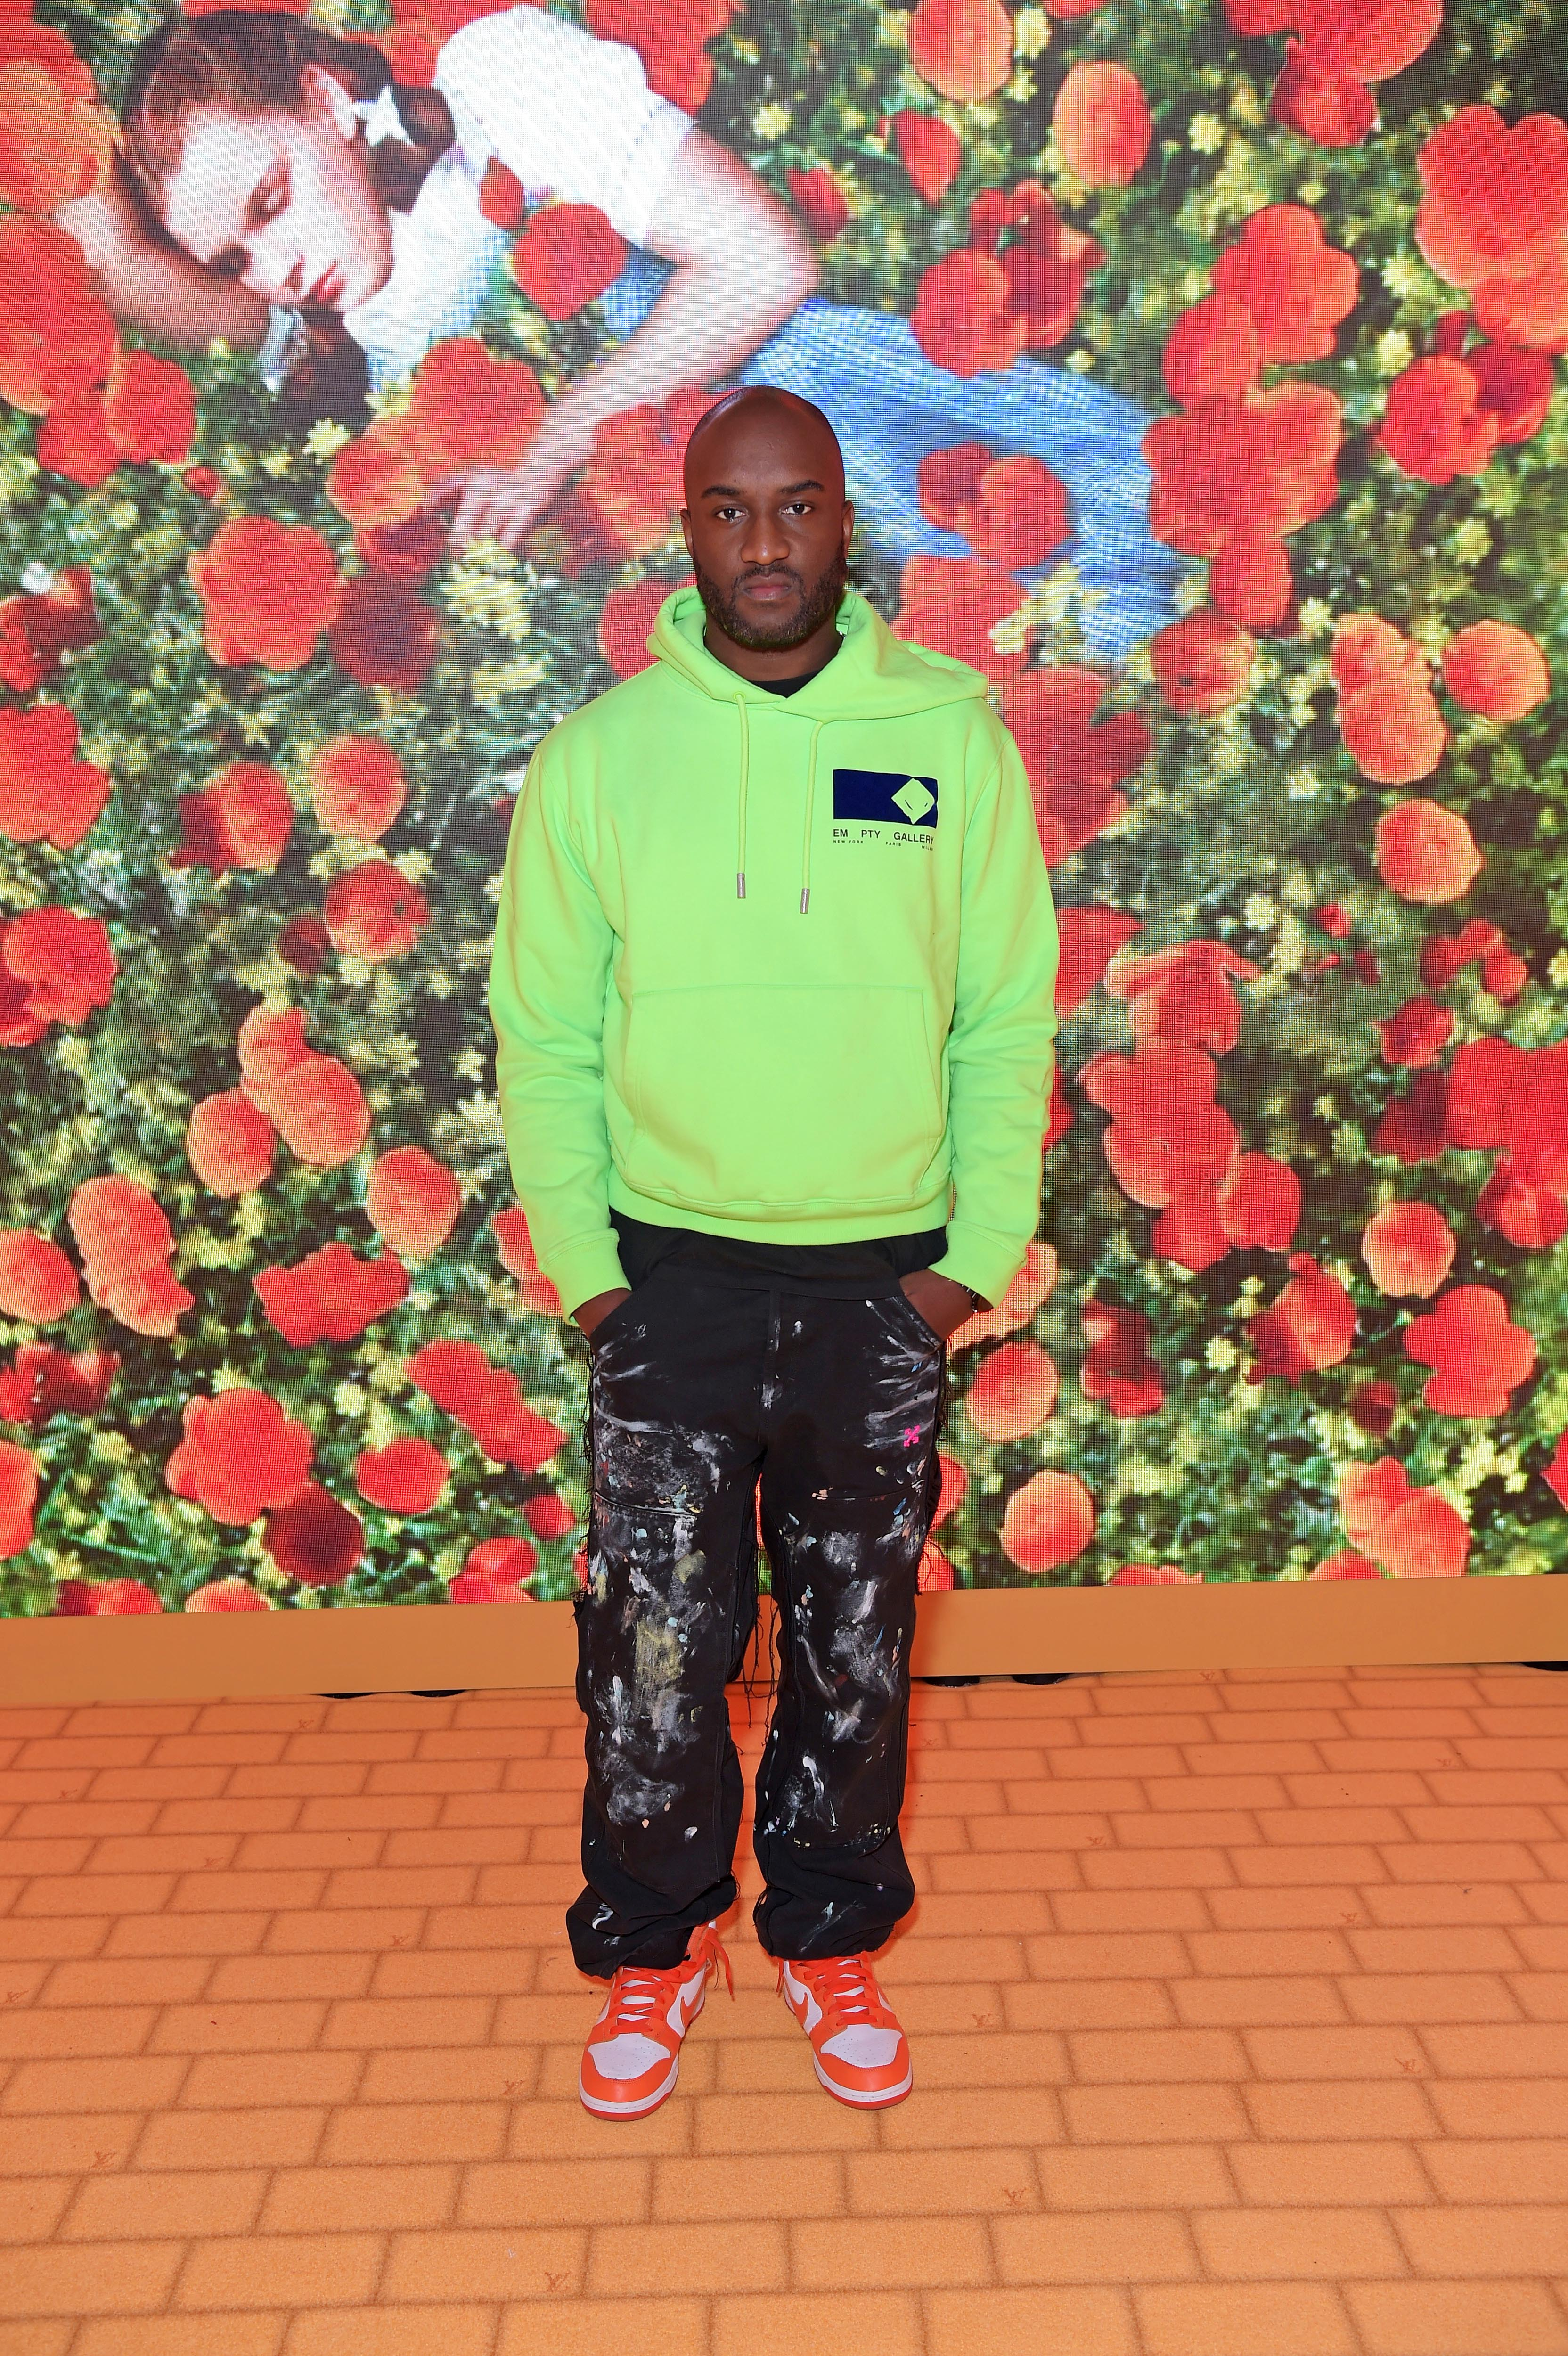 Louis Vuitton Virgil Abloh debuts collection at Wizard of Oz London pop-up